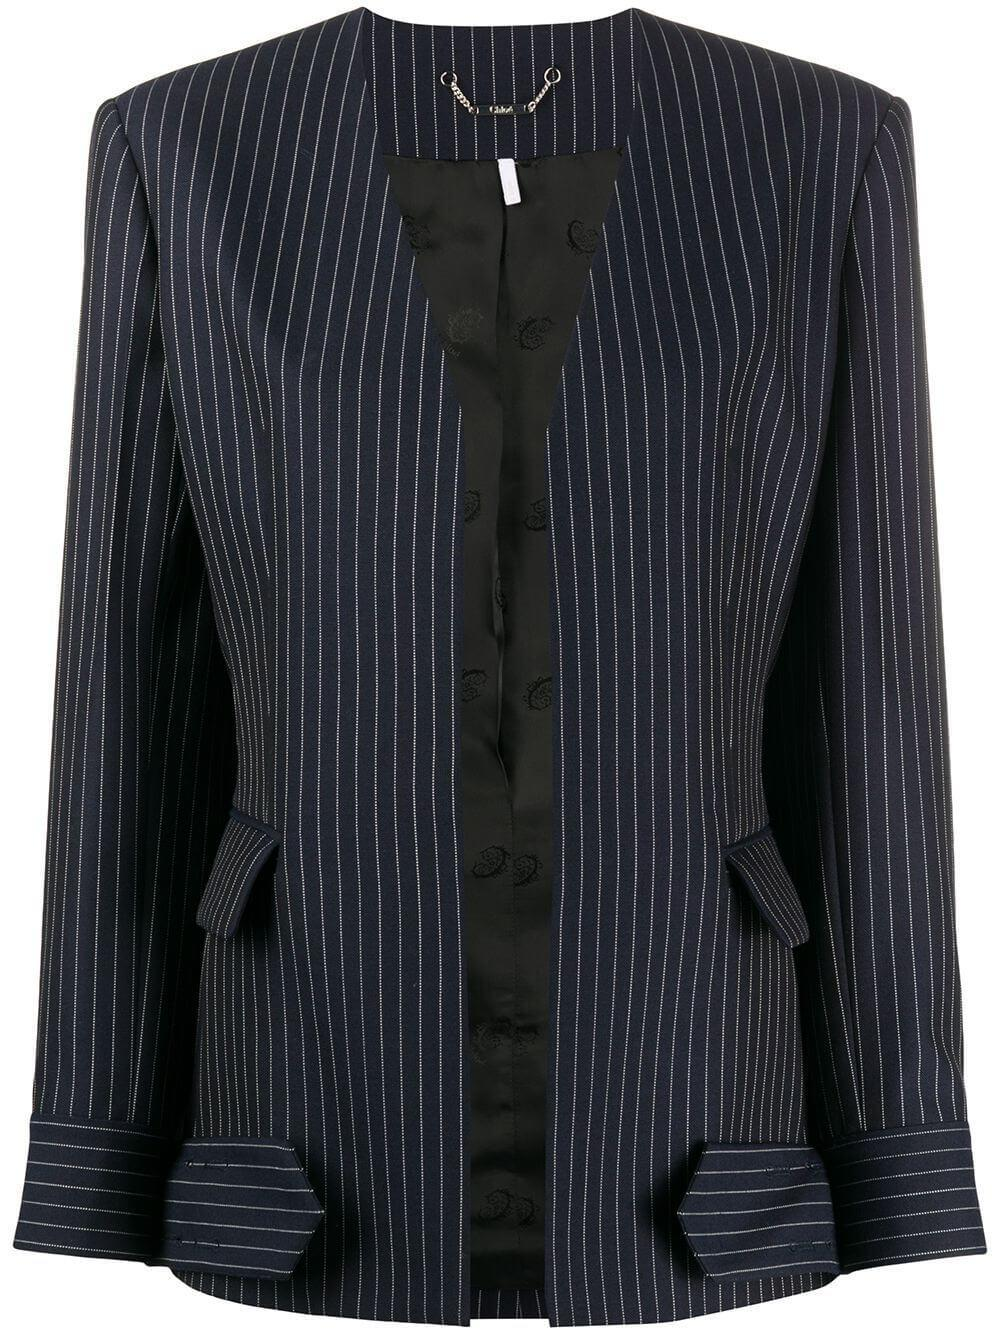 Summer Pinstripe Wool Collarless Jacket